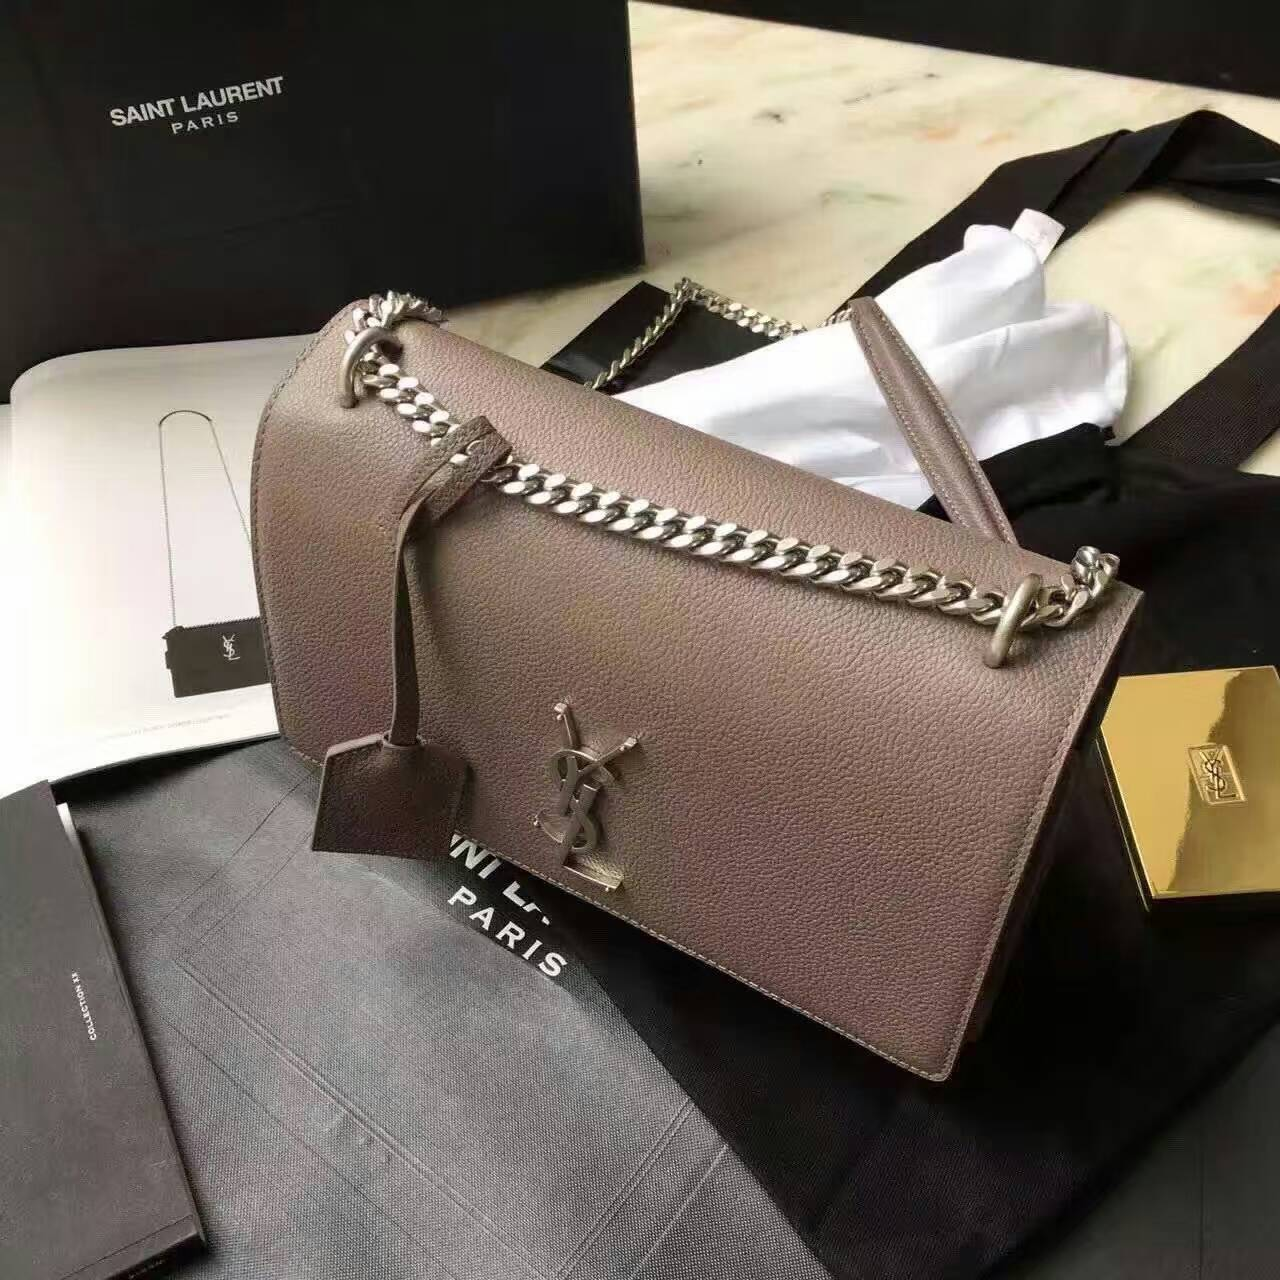 Limited Edition!2016 Saint Laurent Bags Cheap Sale-Saint Laurent Medium Sunset Monogram Bag in Taupe Grained Leather